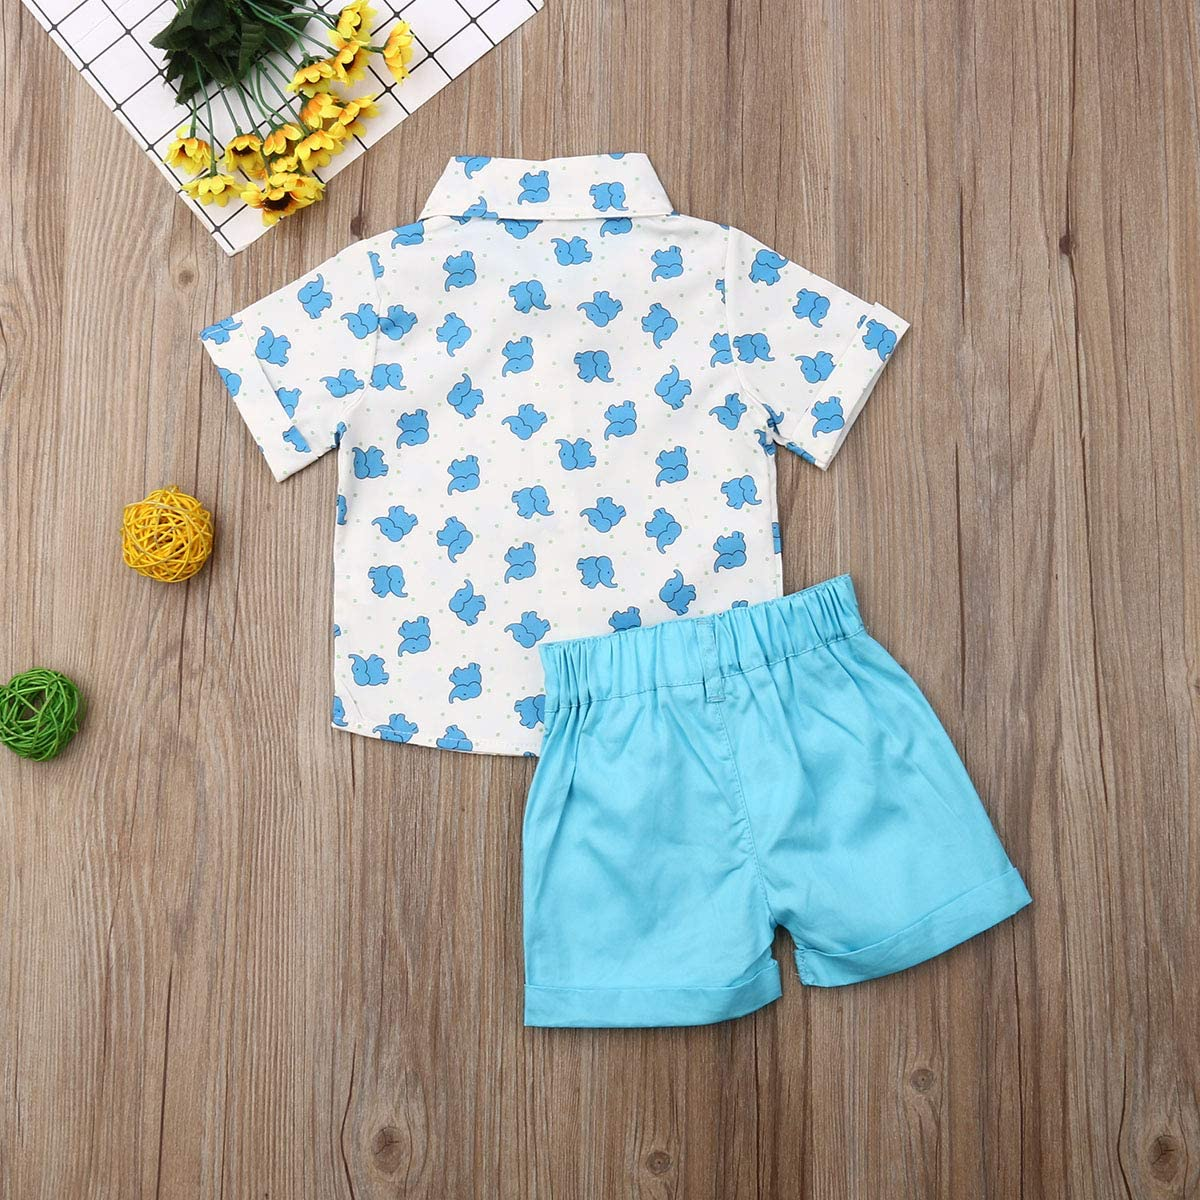 Solid Shorts Pants Toddler Baby Boys Summer Outfits Set Gentleman Button-Down Short Sleeve Shirt Blouse Tops